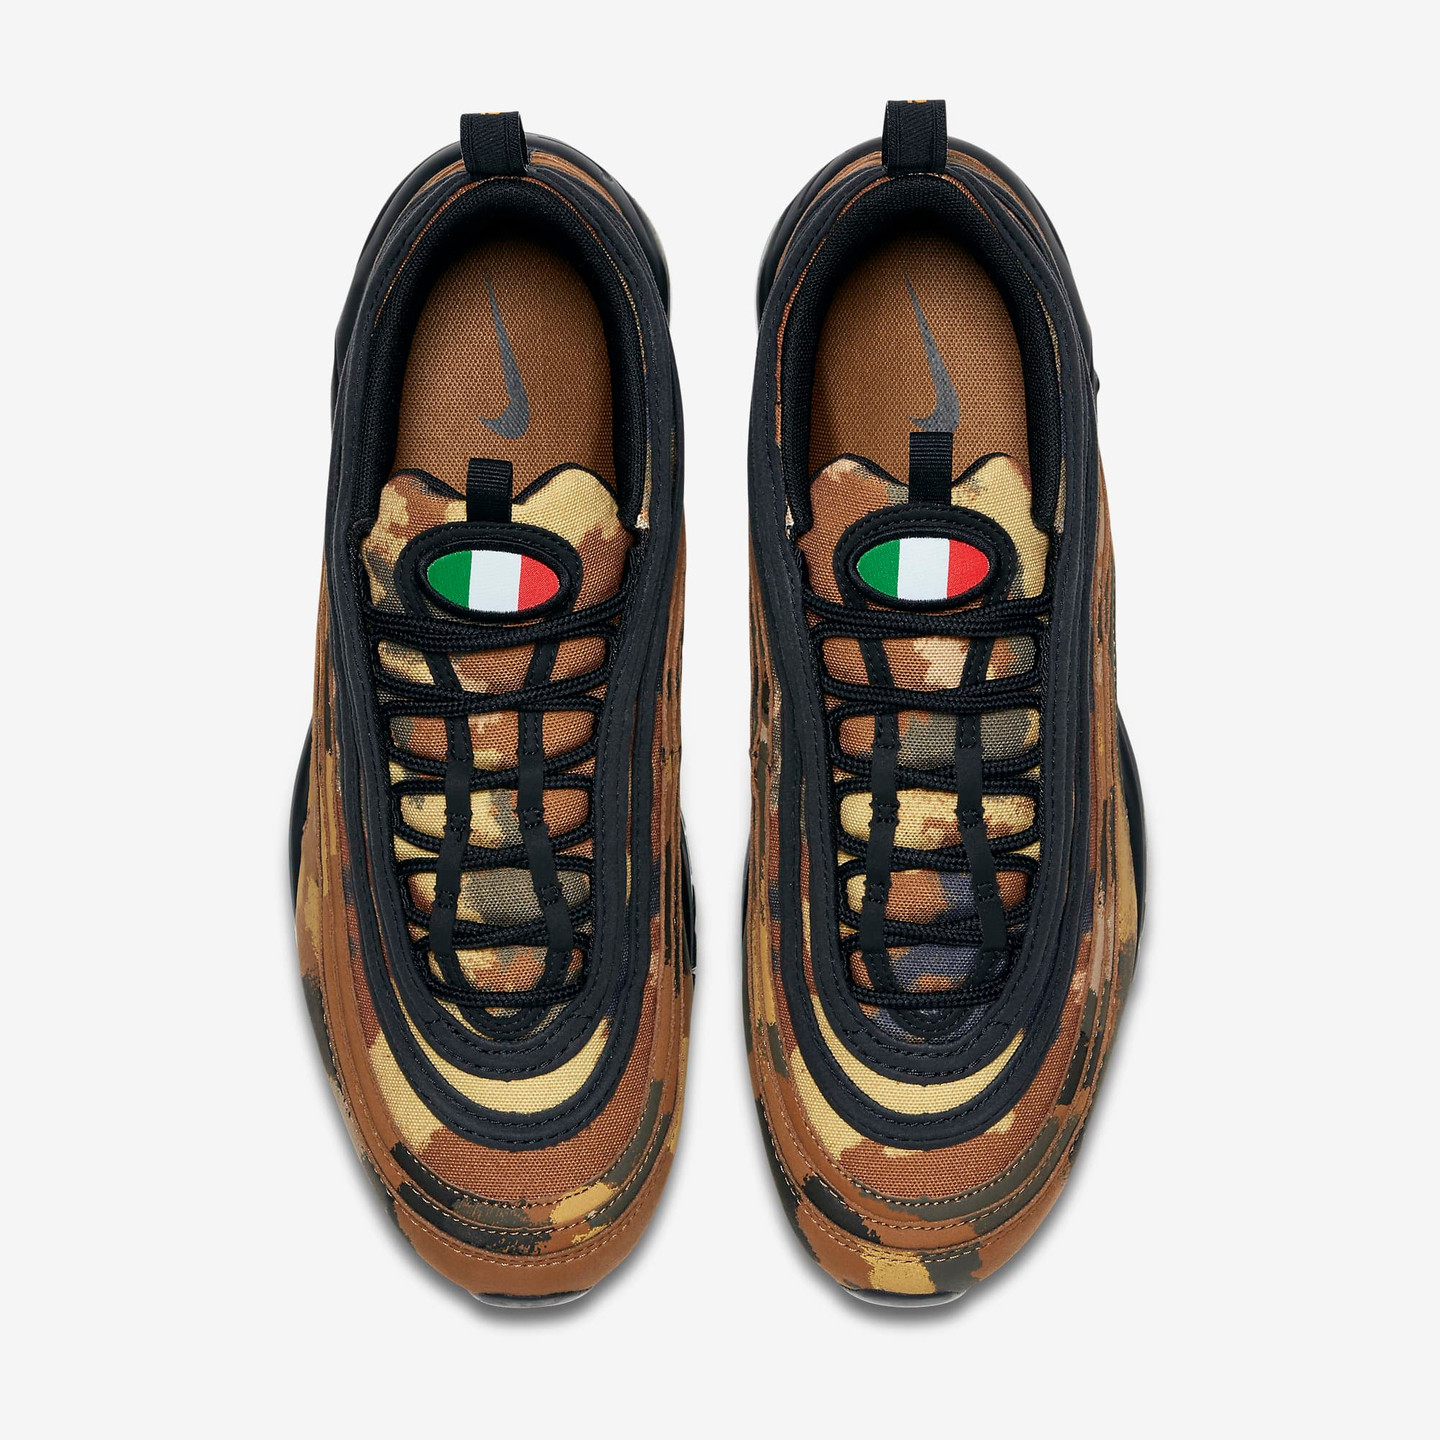 Nike Air Max 97 Premium 'Italy Camo' Ale Brown / Black / Cargo Khaki / Mushroom AJ2614-202